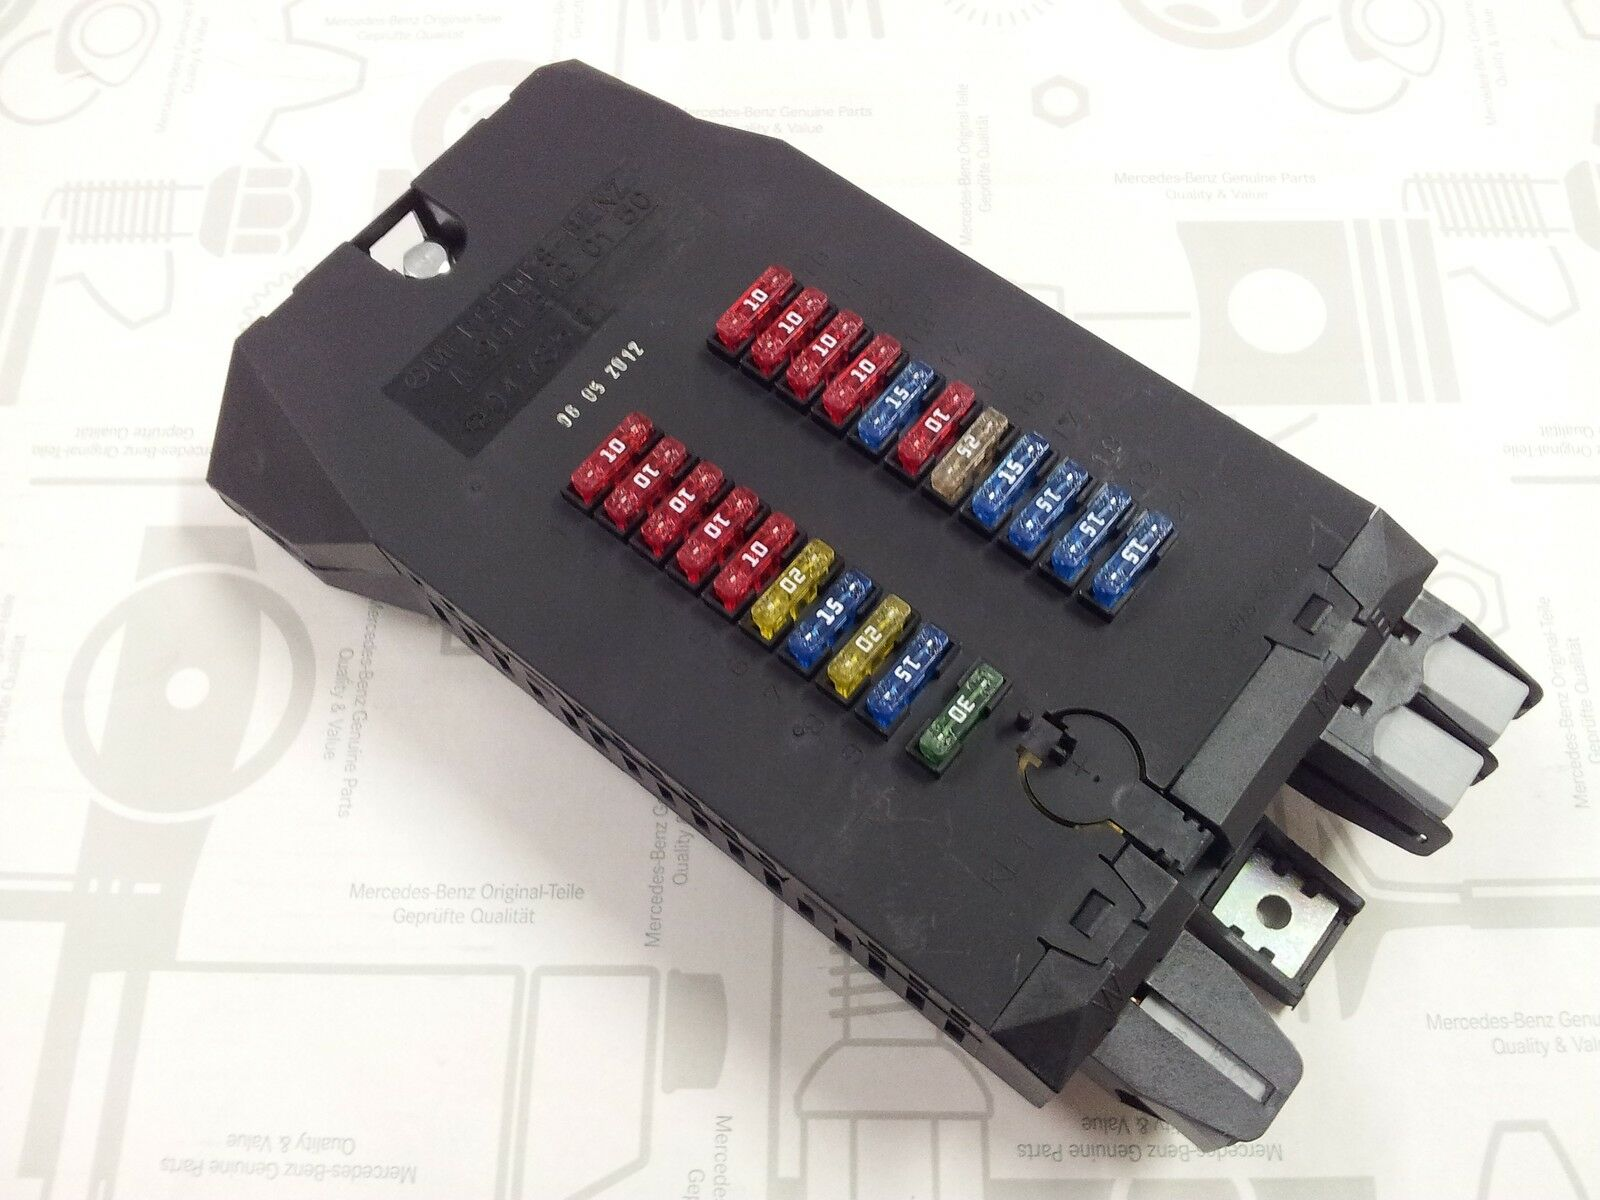 Mercedes W901 W905 Sprinter Fuse Box Assembly 9180 Picclick Uk 1 Of 1only 4 Available See More